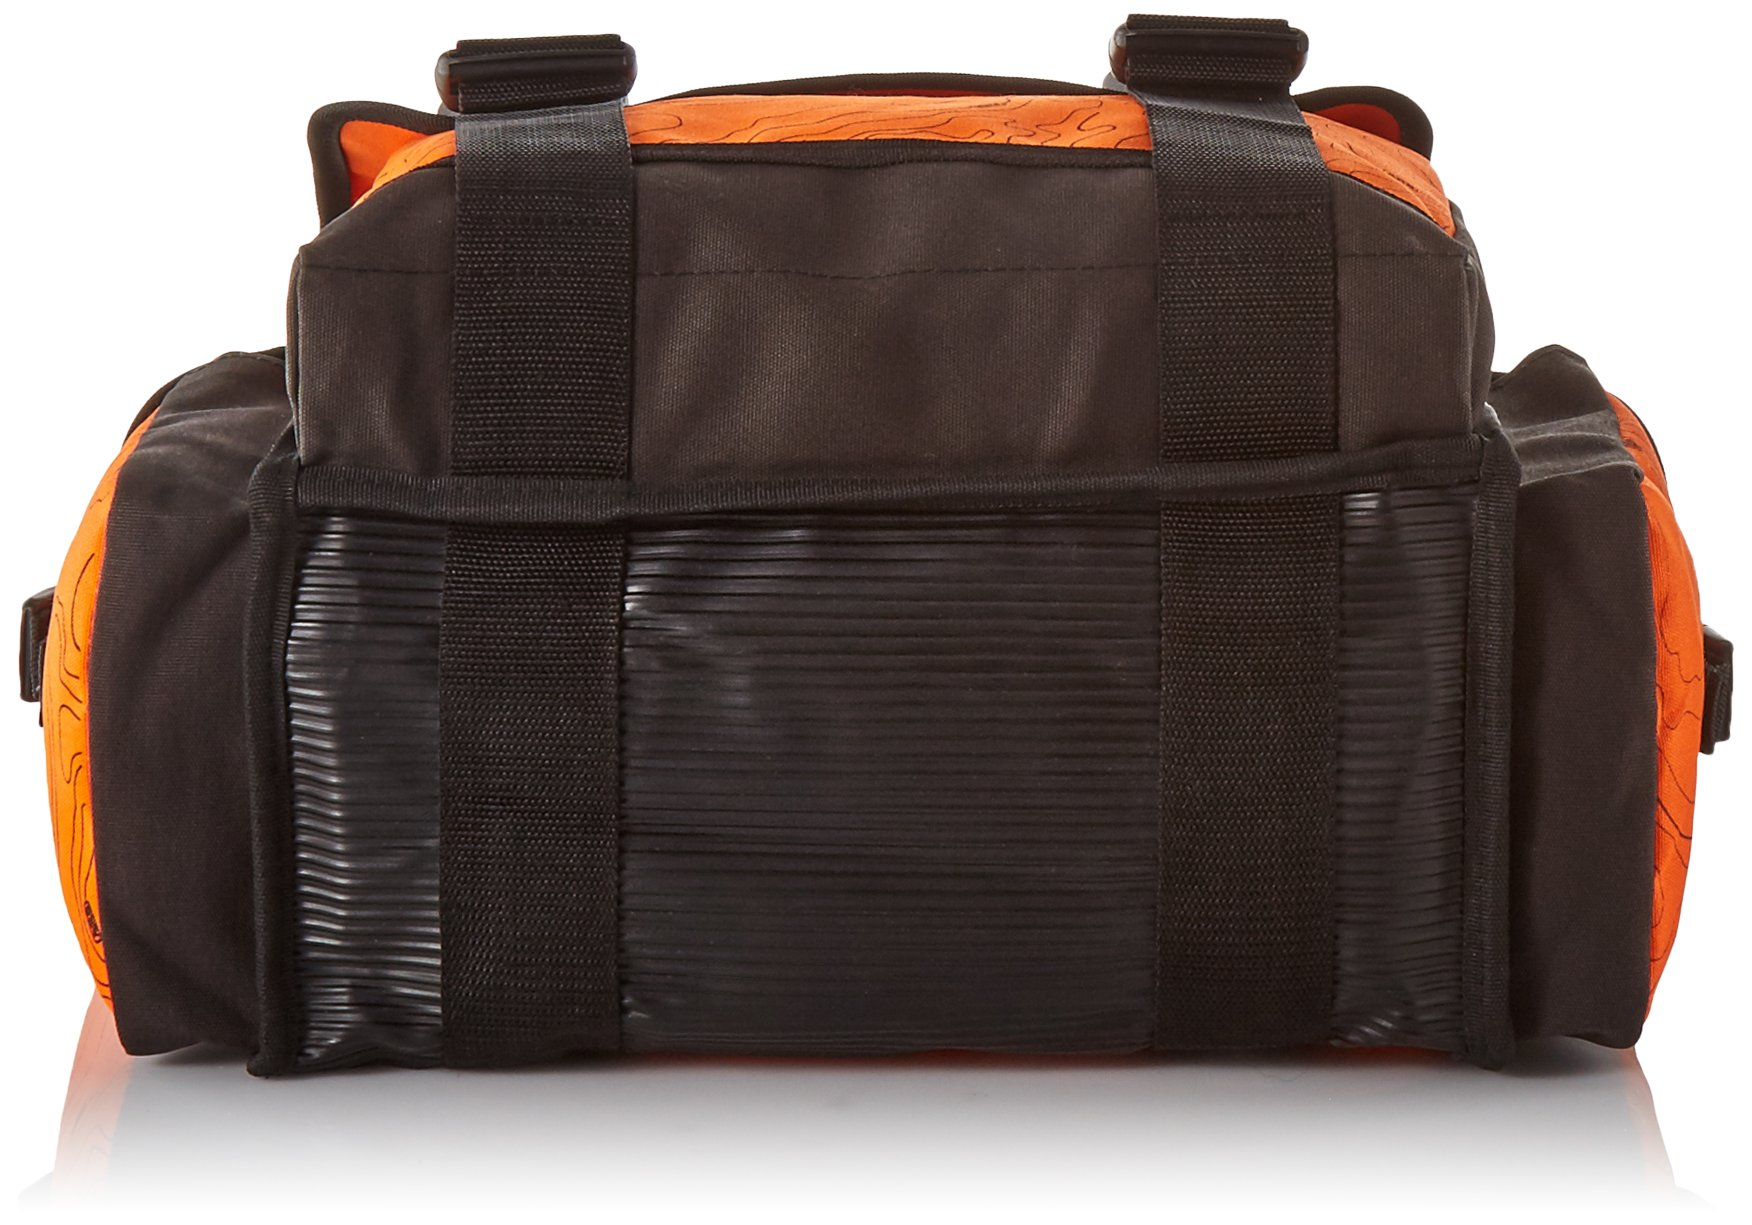 ARB ARB501 Orange Large Recovery Bag by ARB (Image #4)